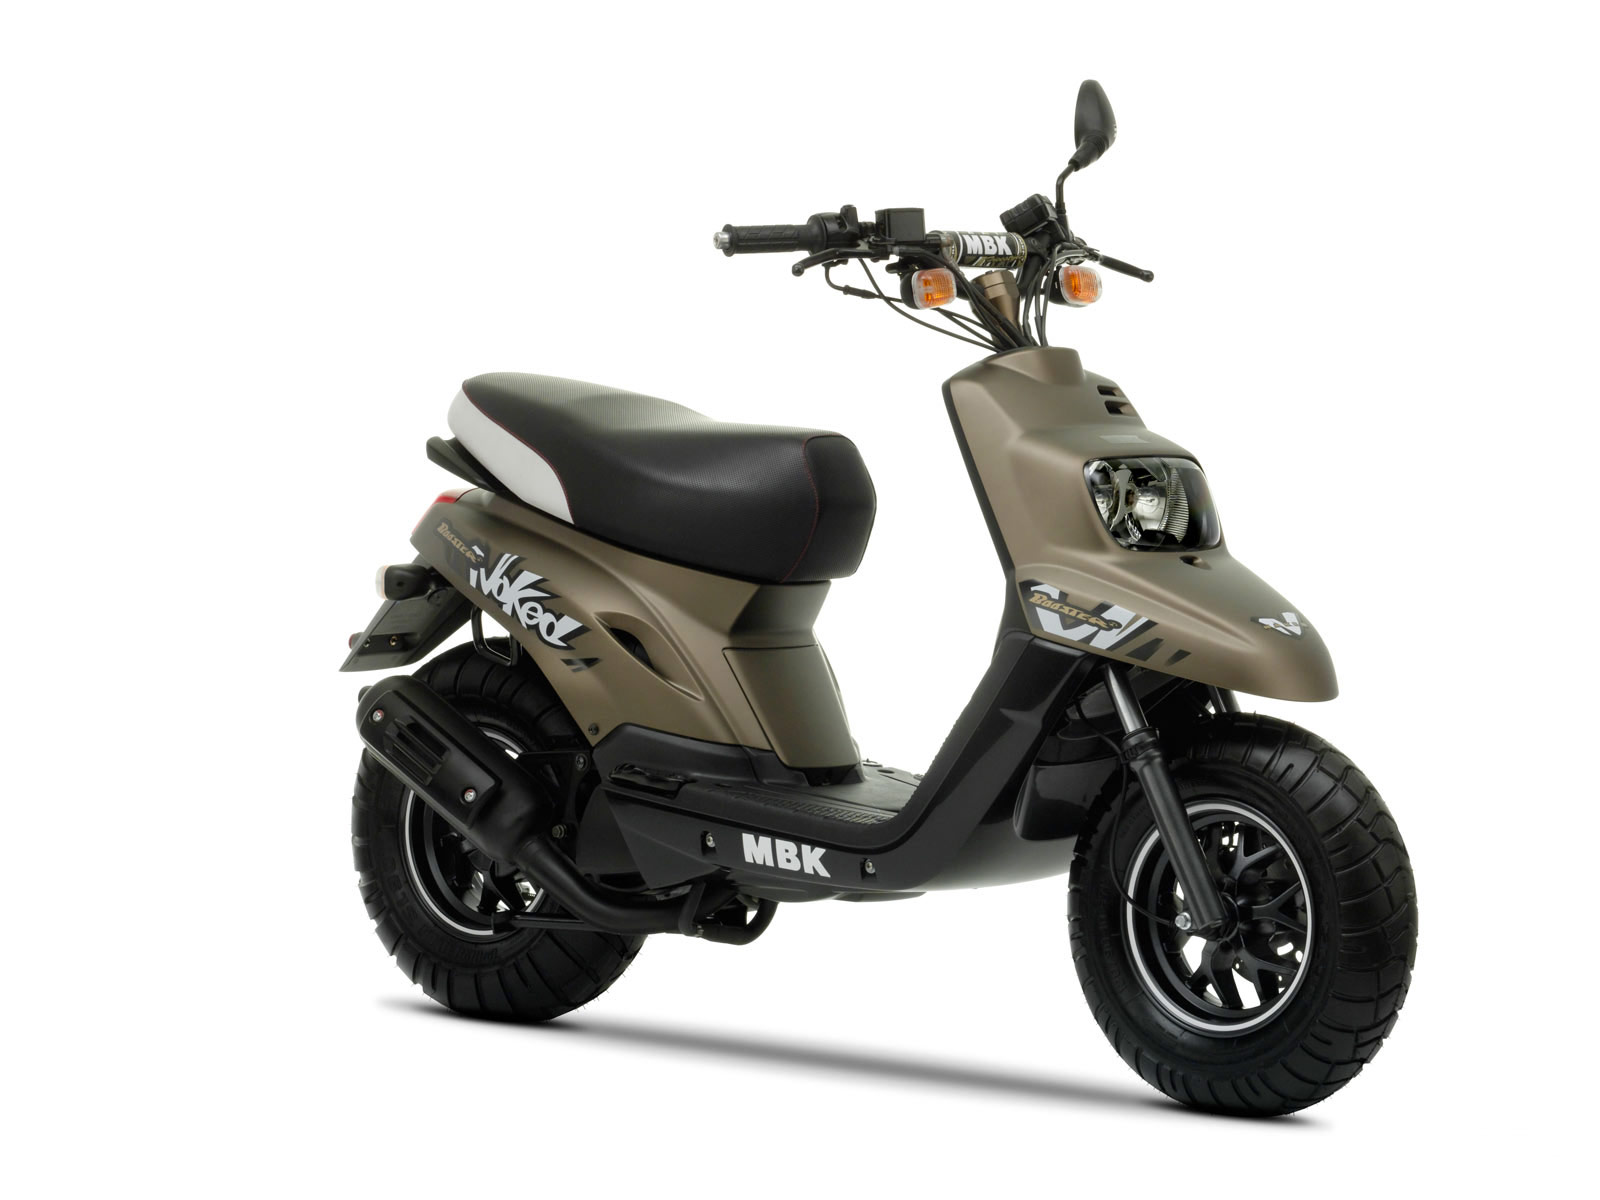 2009 Mbk Booster Naked Scooter Pictures Insurance Info